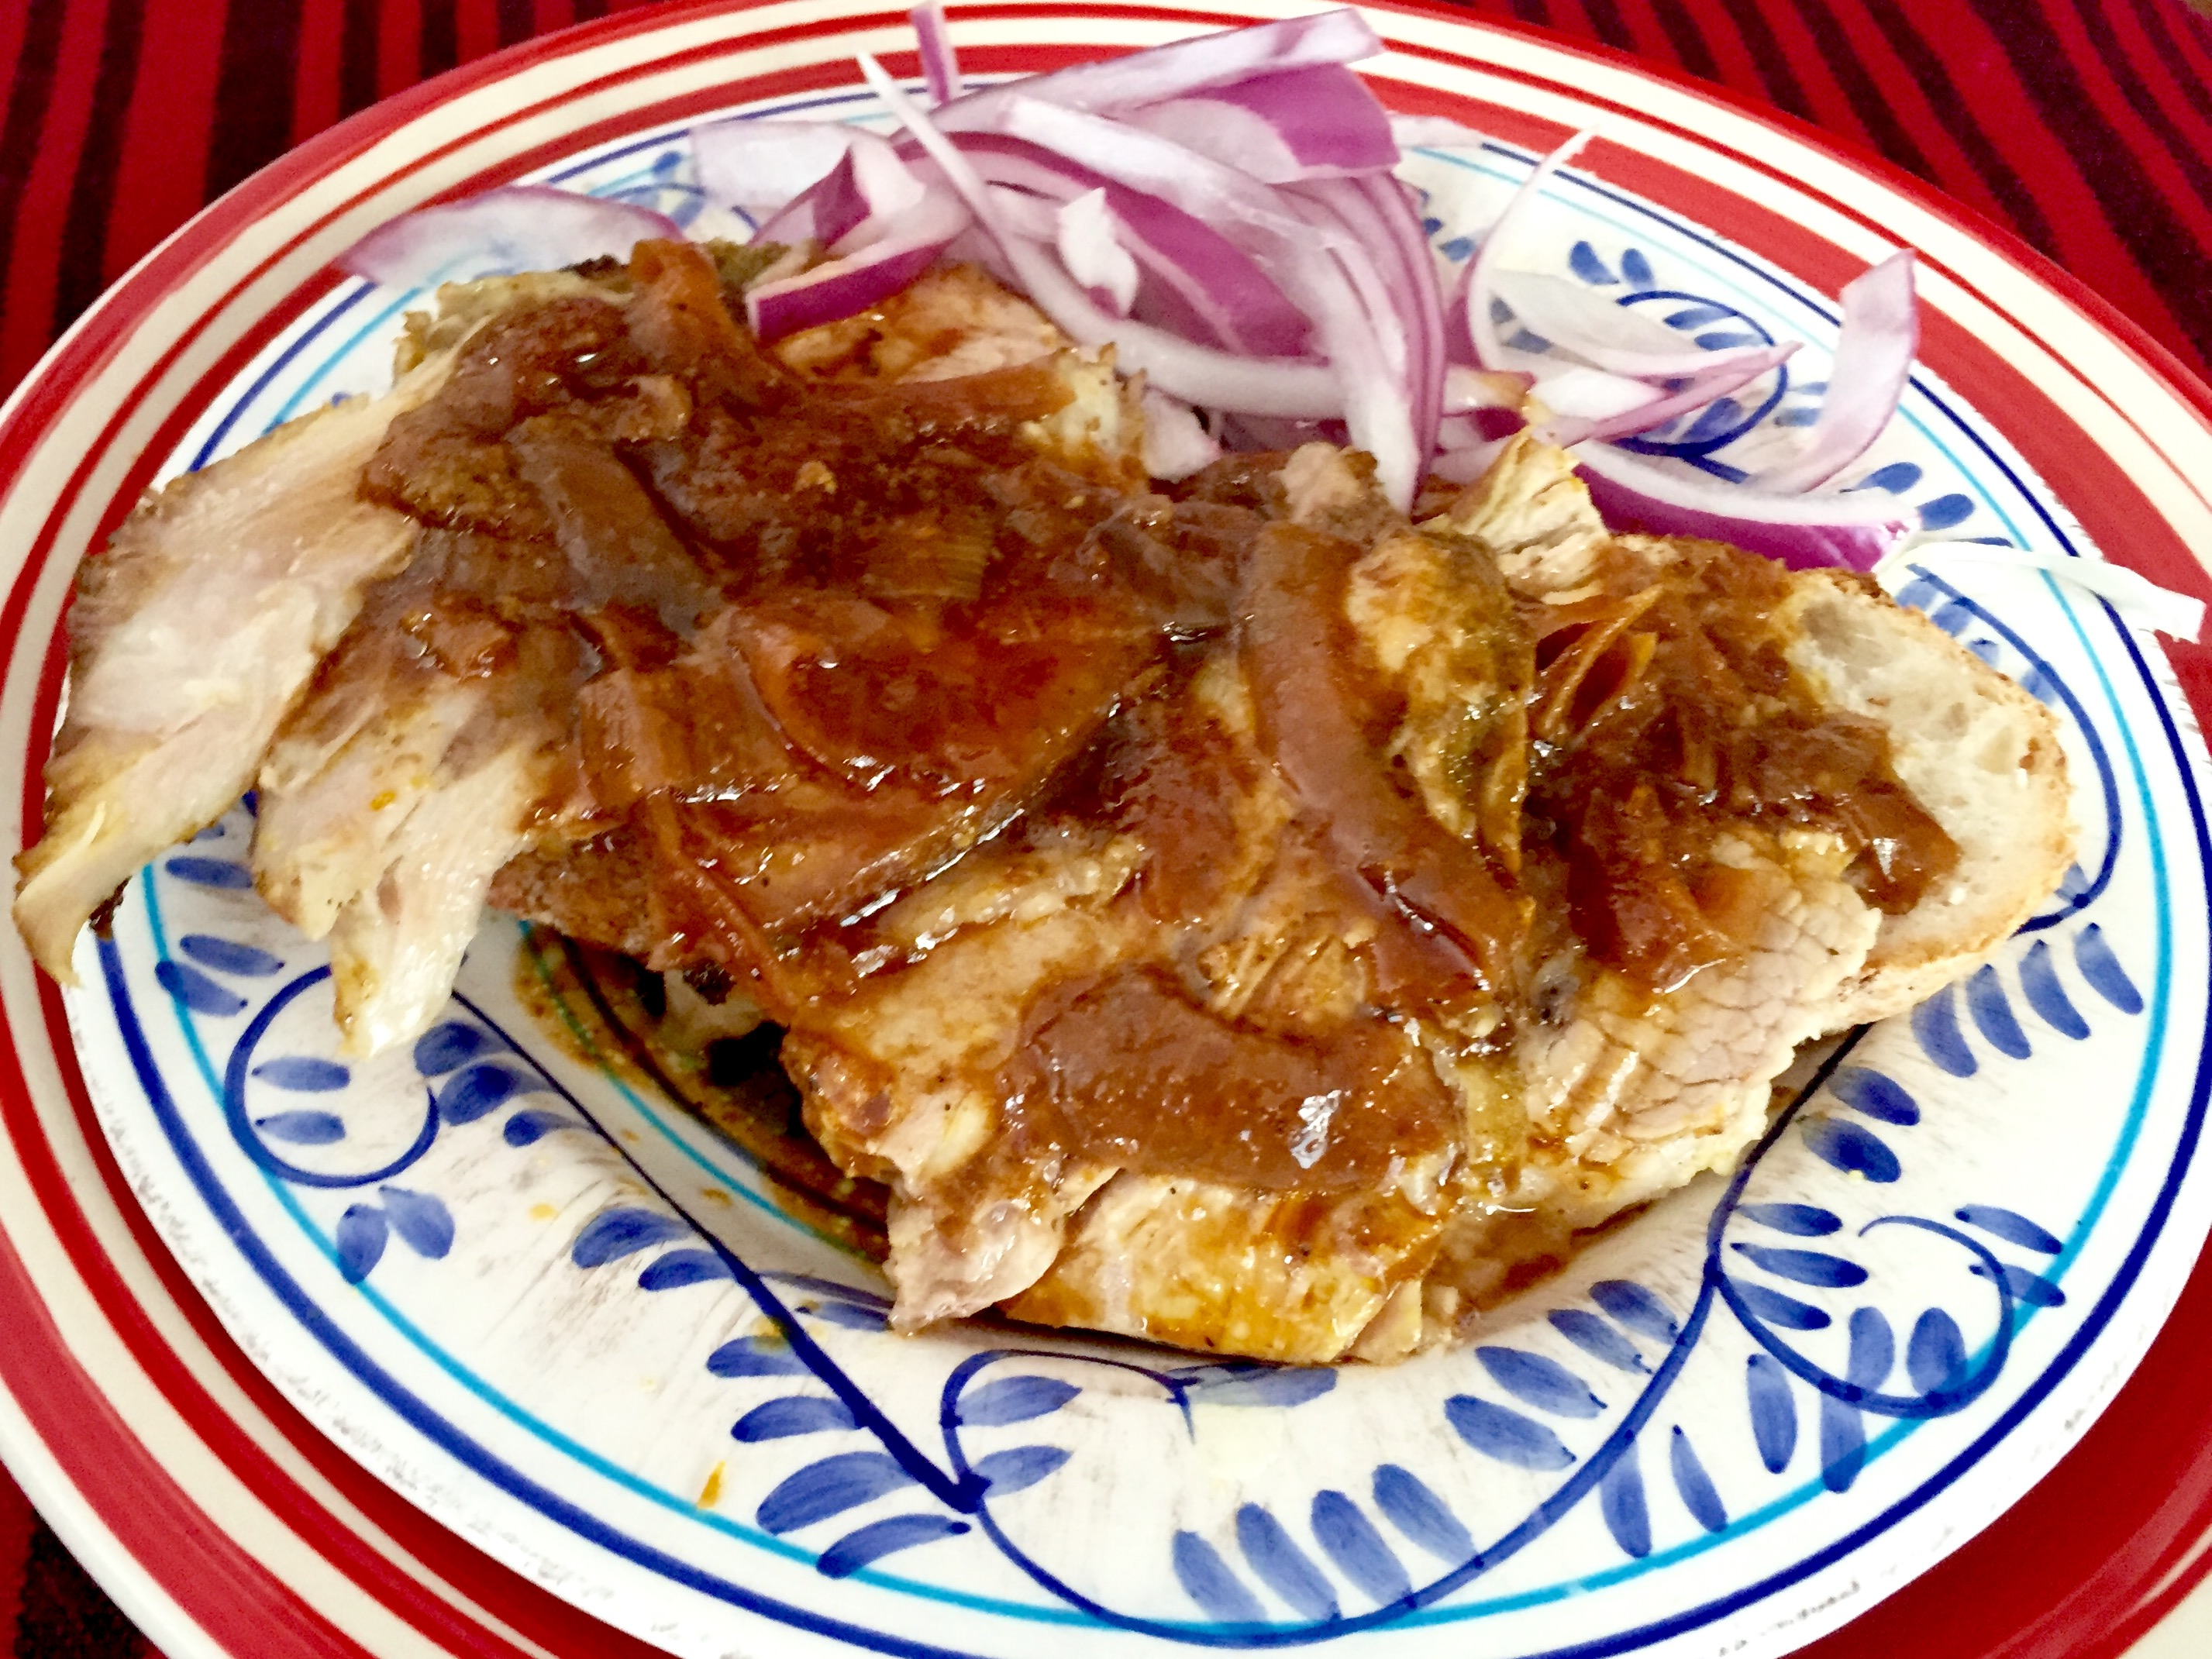 Open Face Lechón Sandwich with Gravy and Peruvian Onion Zarza (David Knowlton)